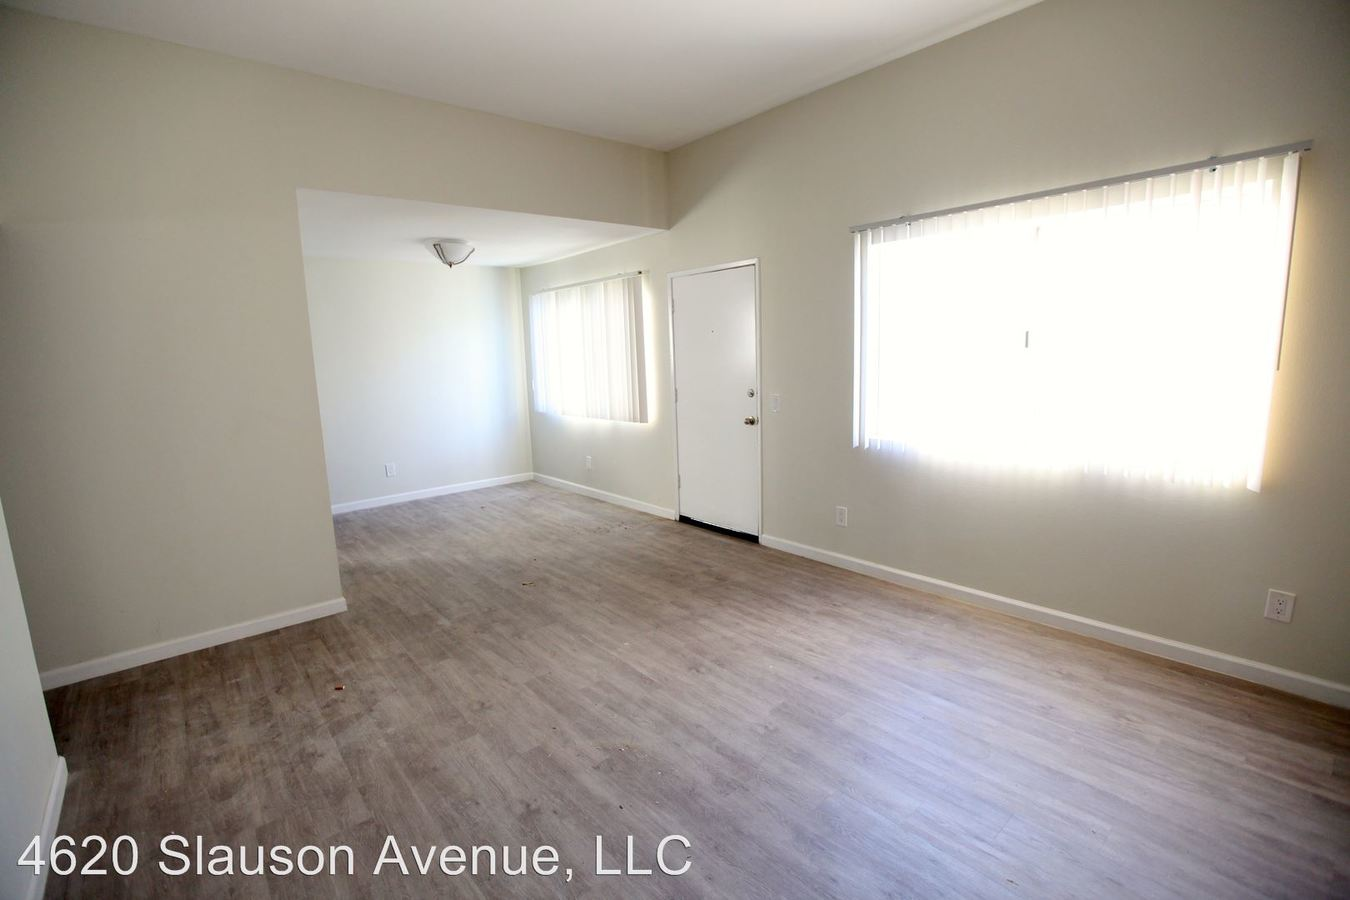 2 Bedrooms 1 Bathroom Apartment for rent at 4620 S Slauson Ave in Culver City, CA